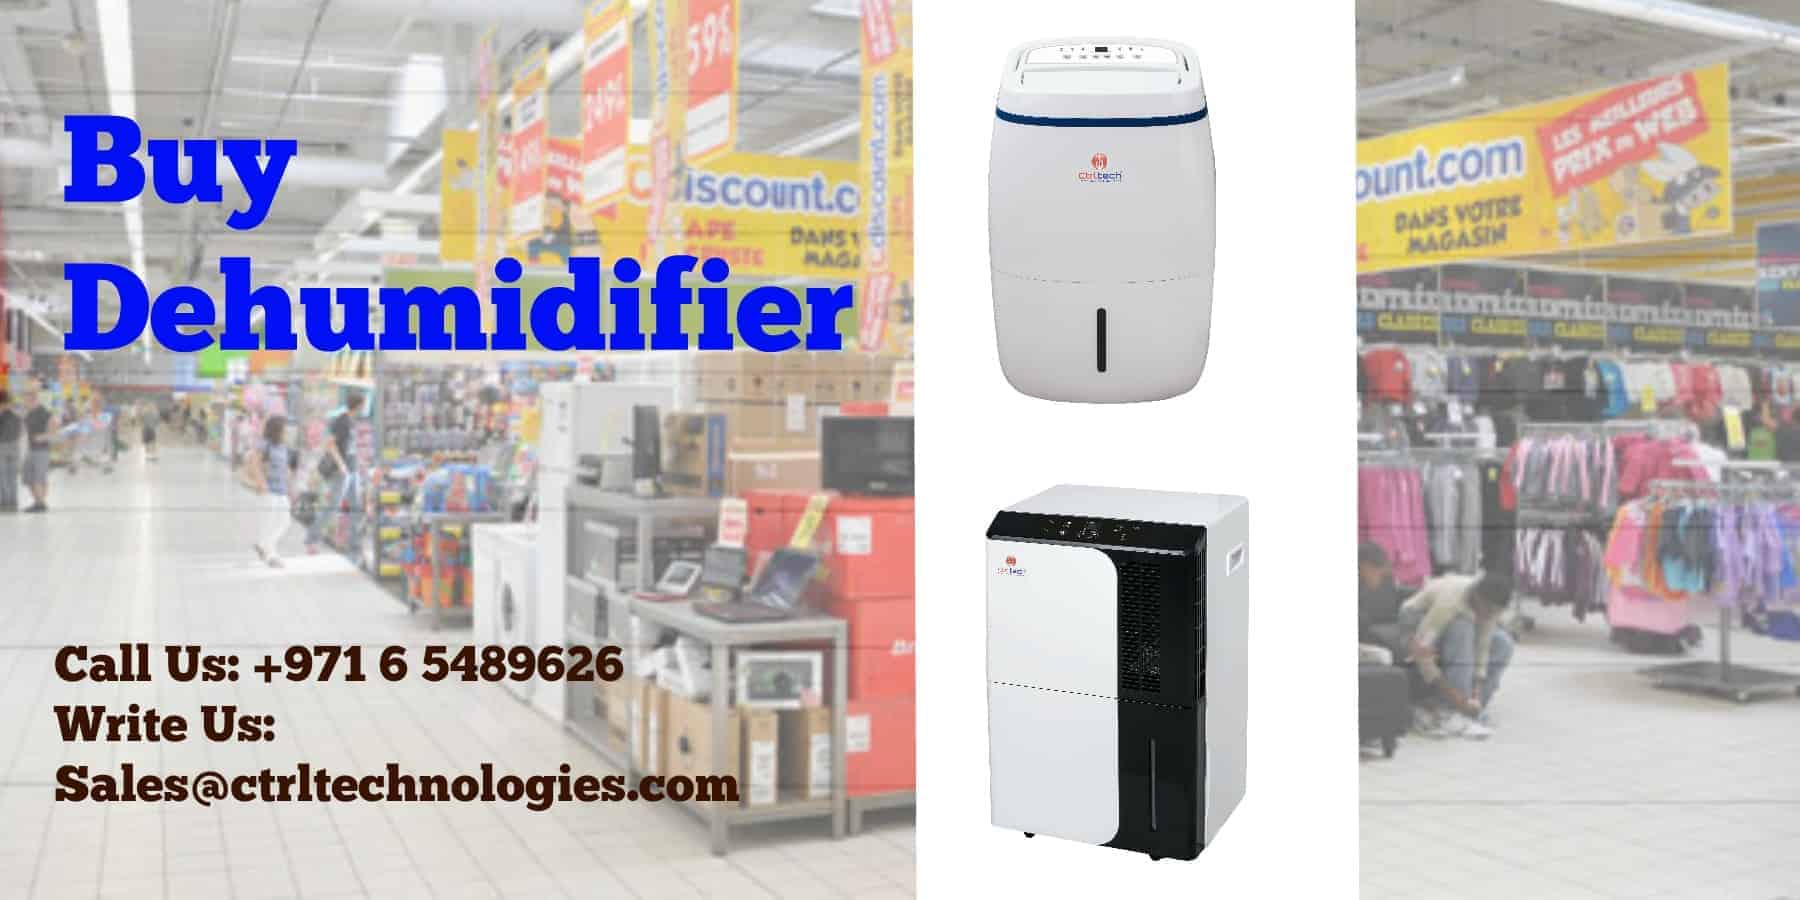 Dehumidifier Carrefour Dubai UAE for best Buy.